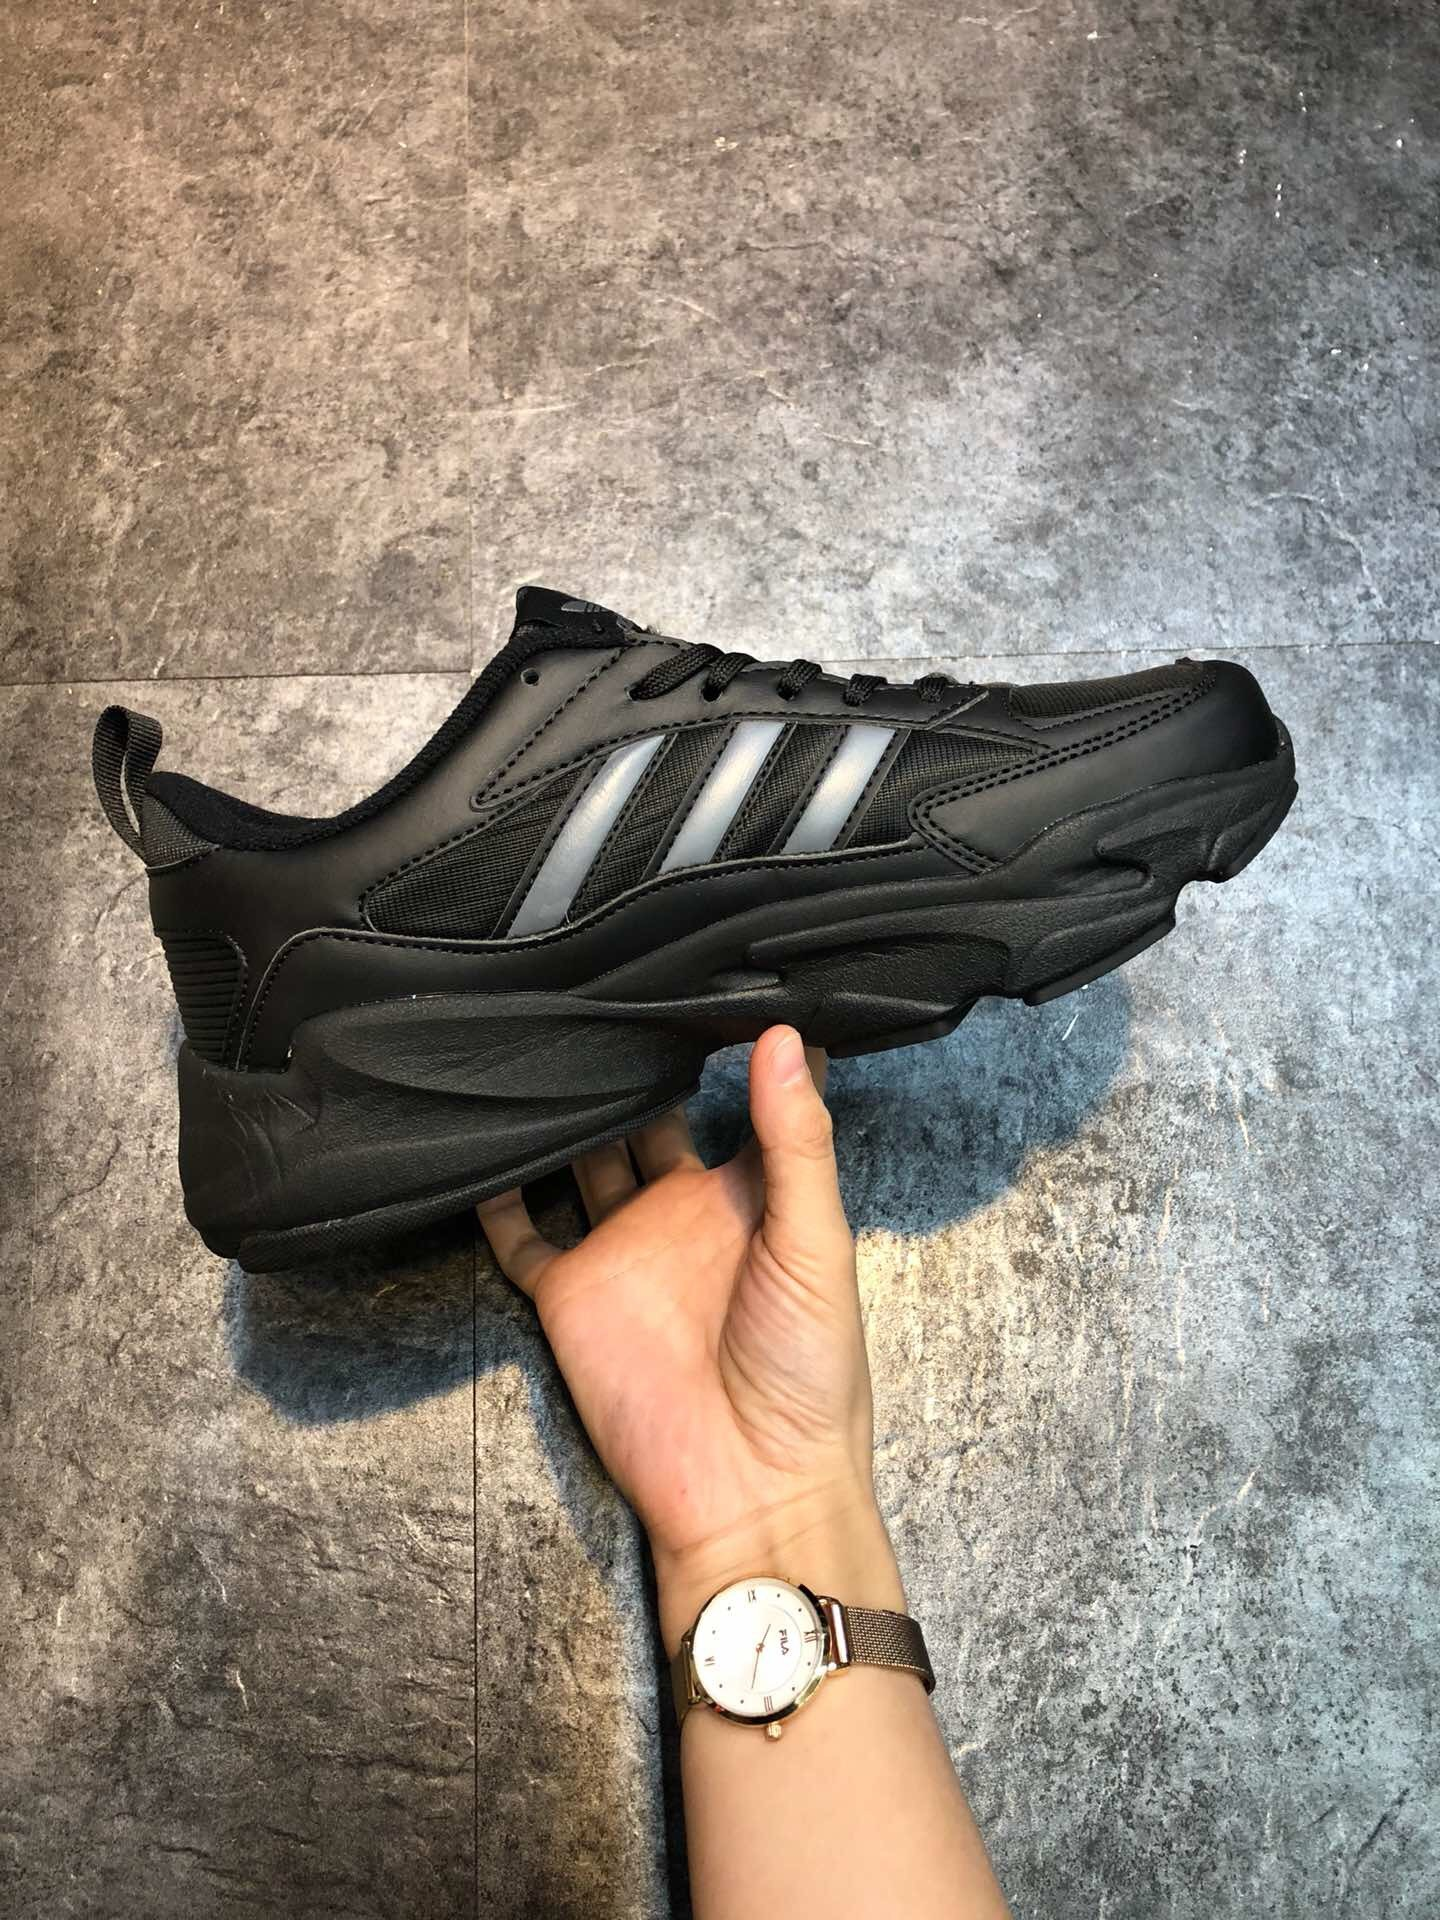 quality design 72d18 785fe Adidas Yeezy 500 Black Classic Daddy Shoes